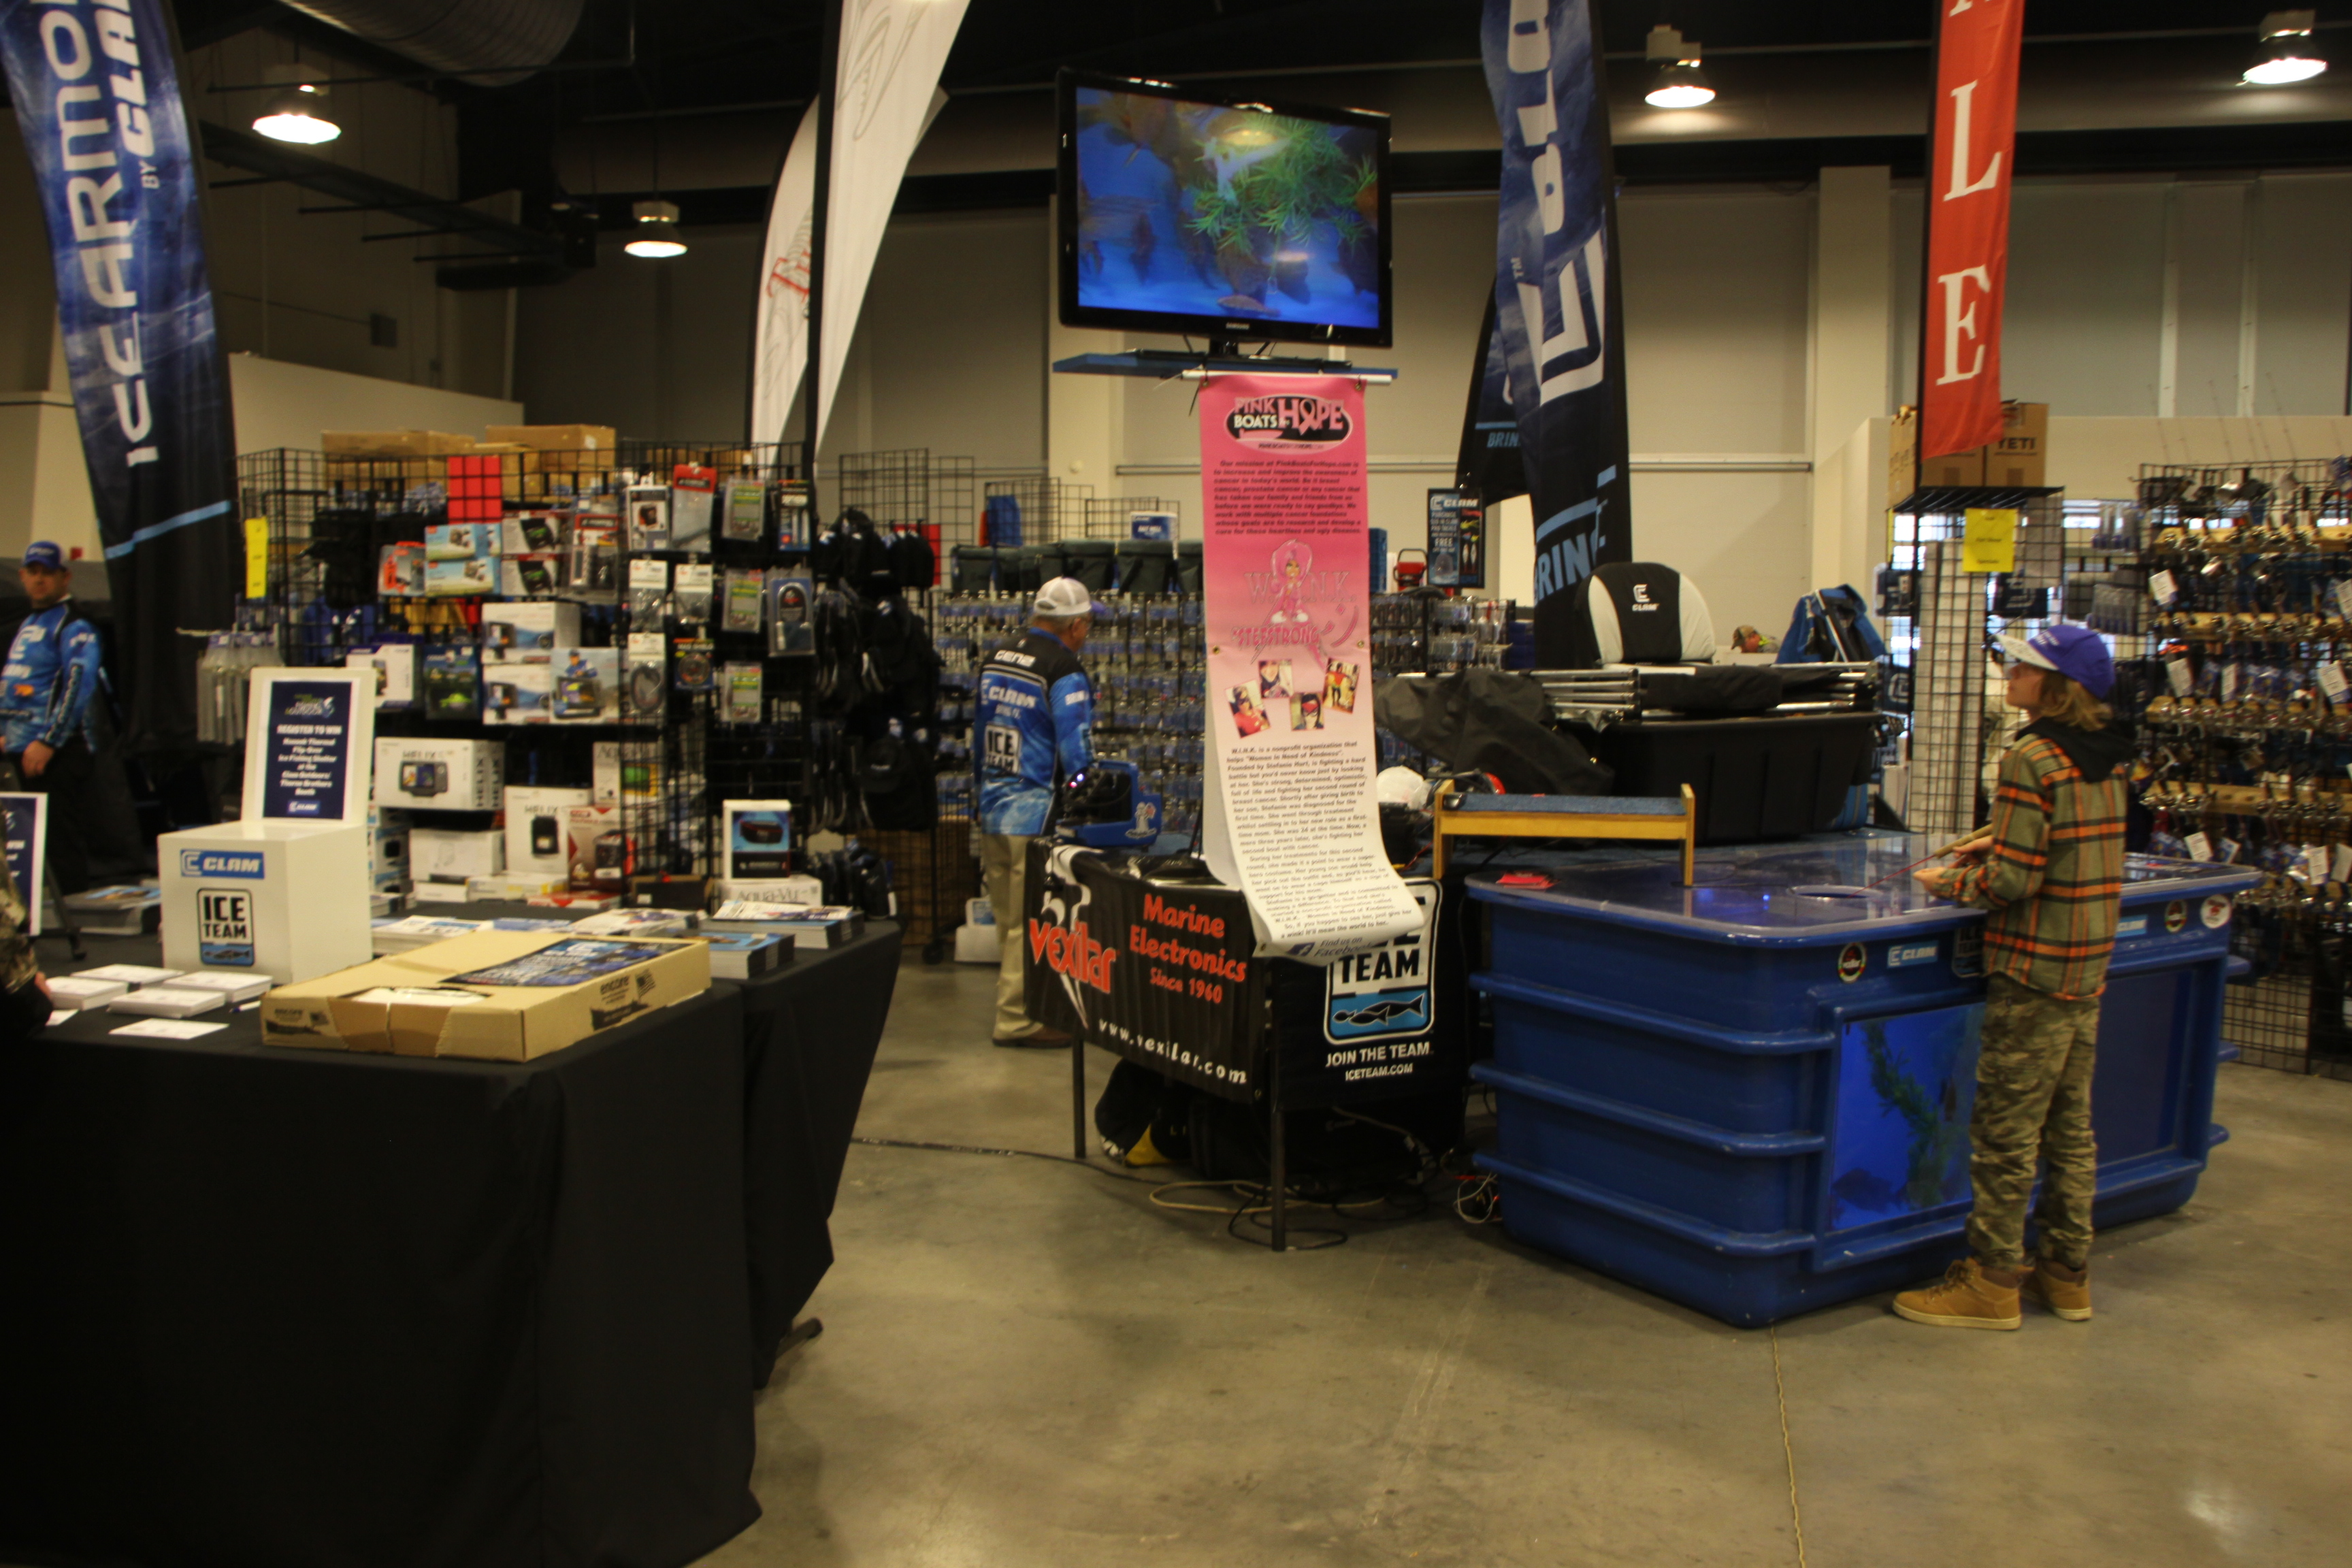 Clam Outdoors had an expnasive display on ice fishing during the Greater Niagara Fishing and Outdoors Expo.